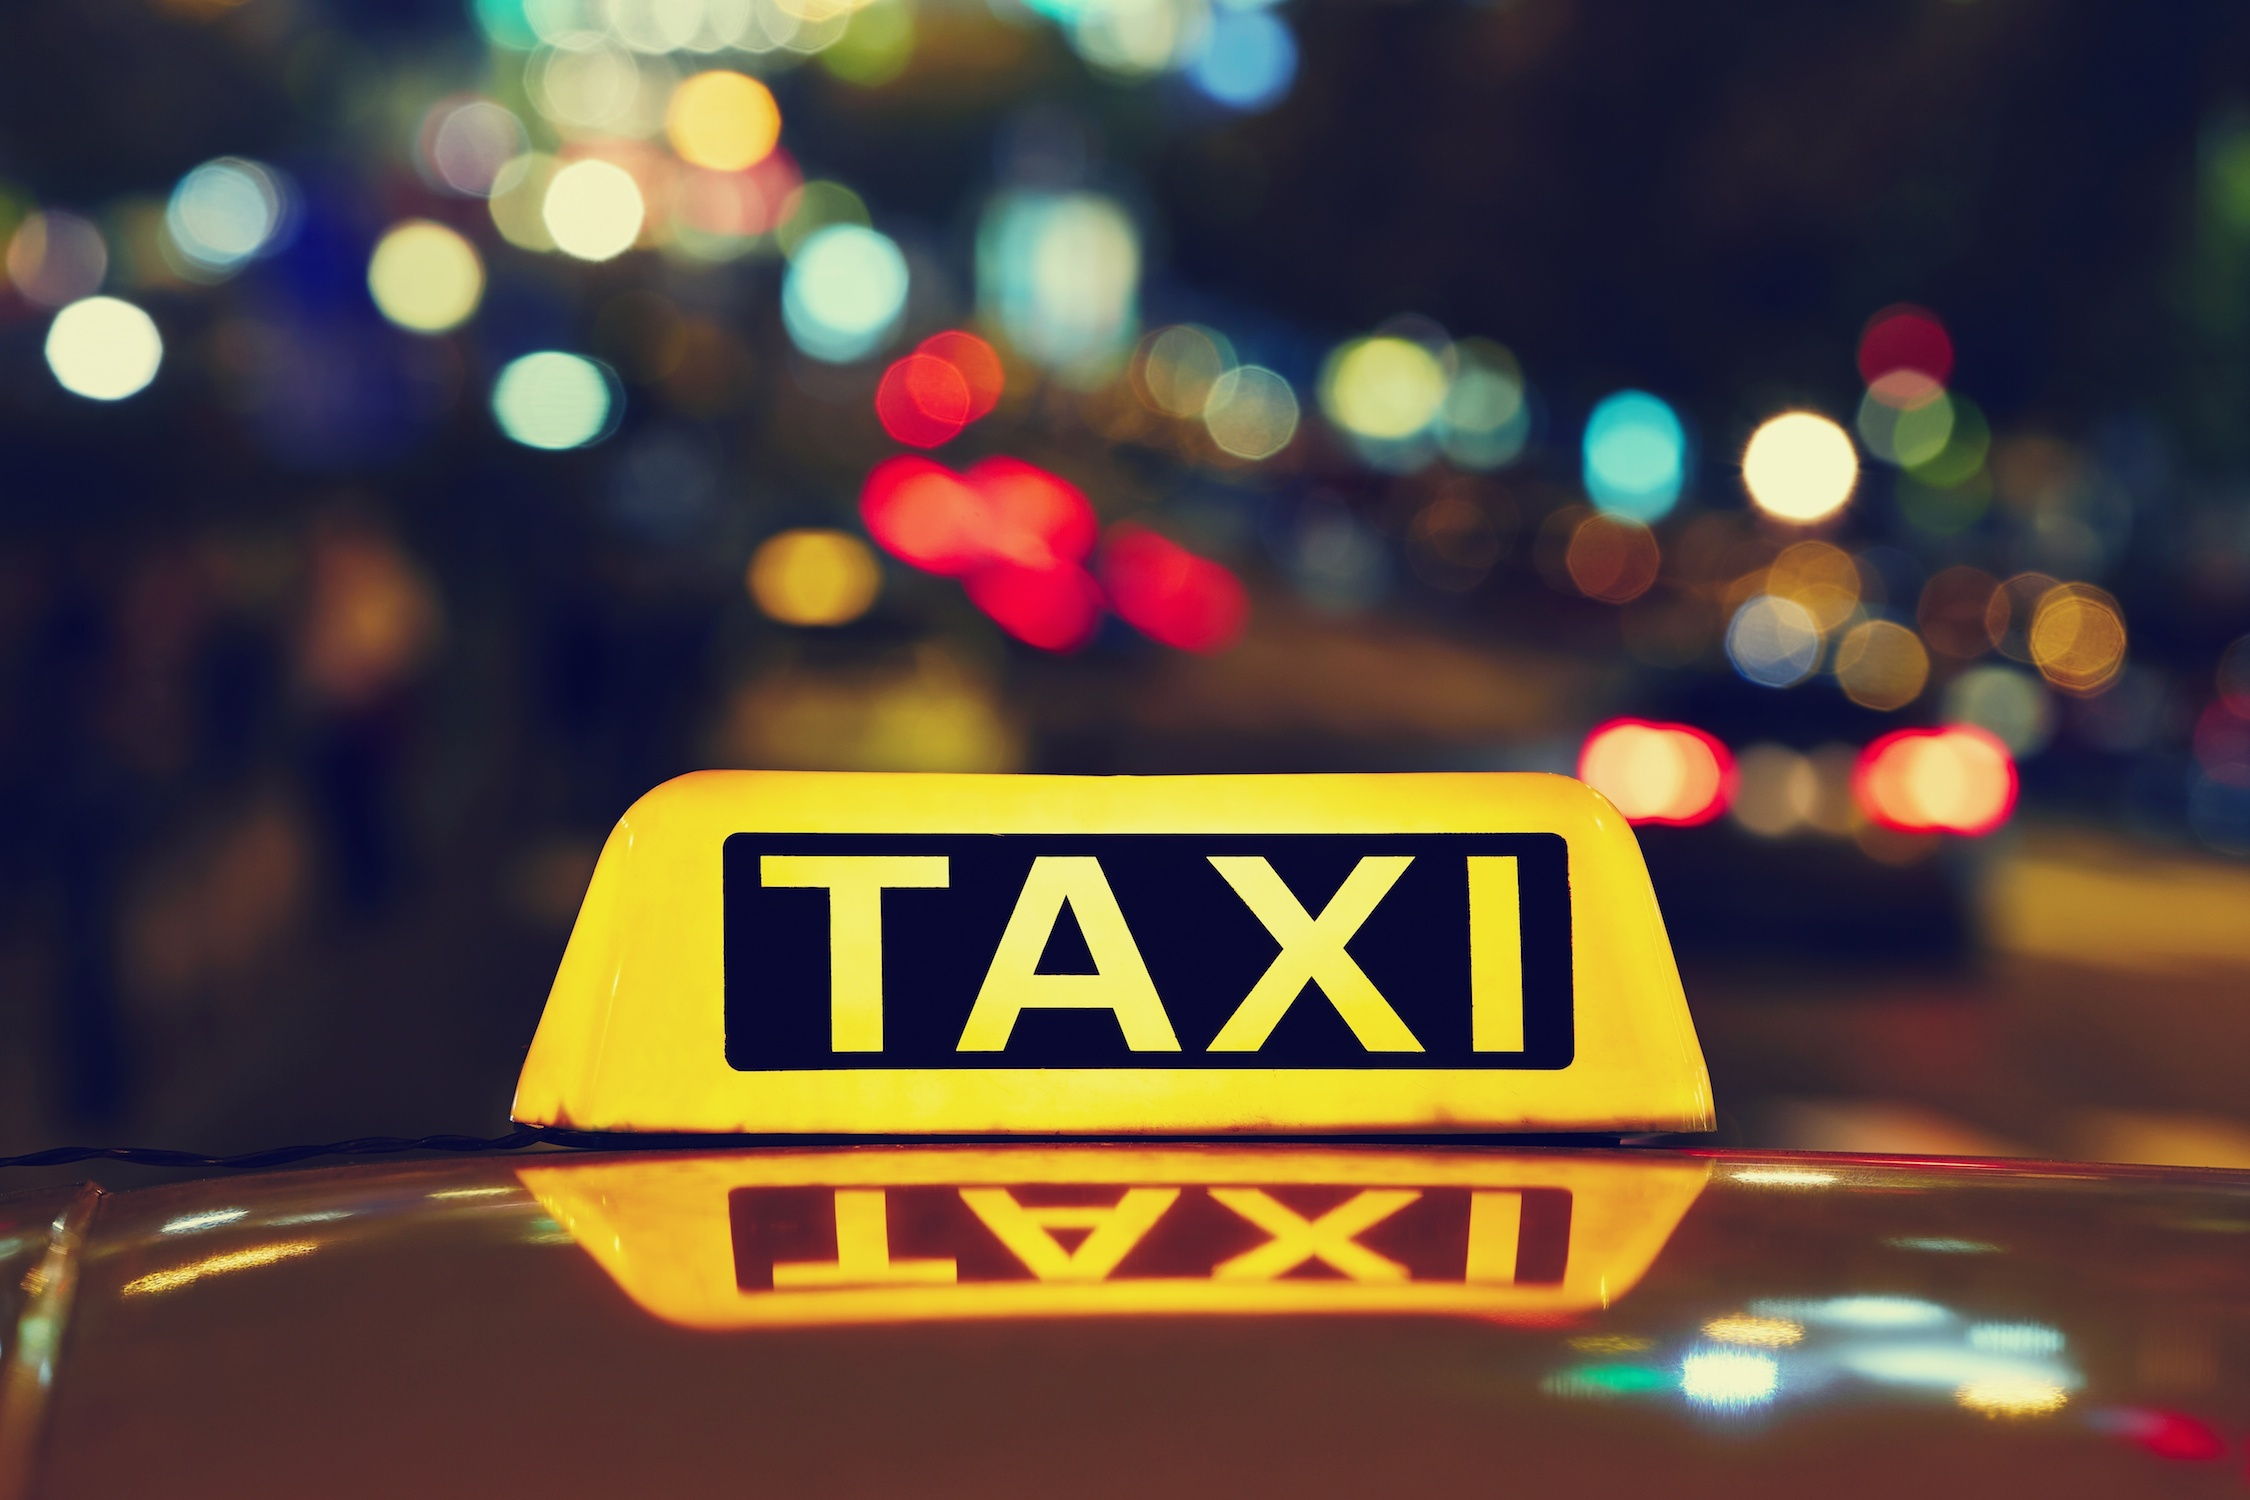 Chicago airport taxis in city lights